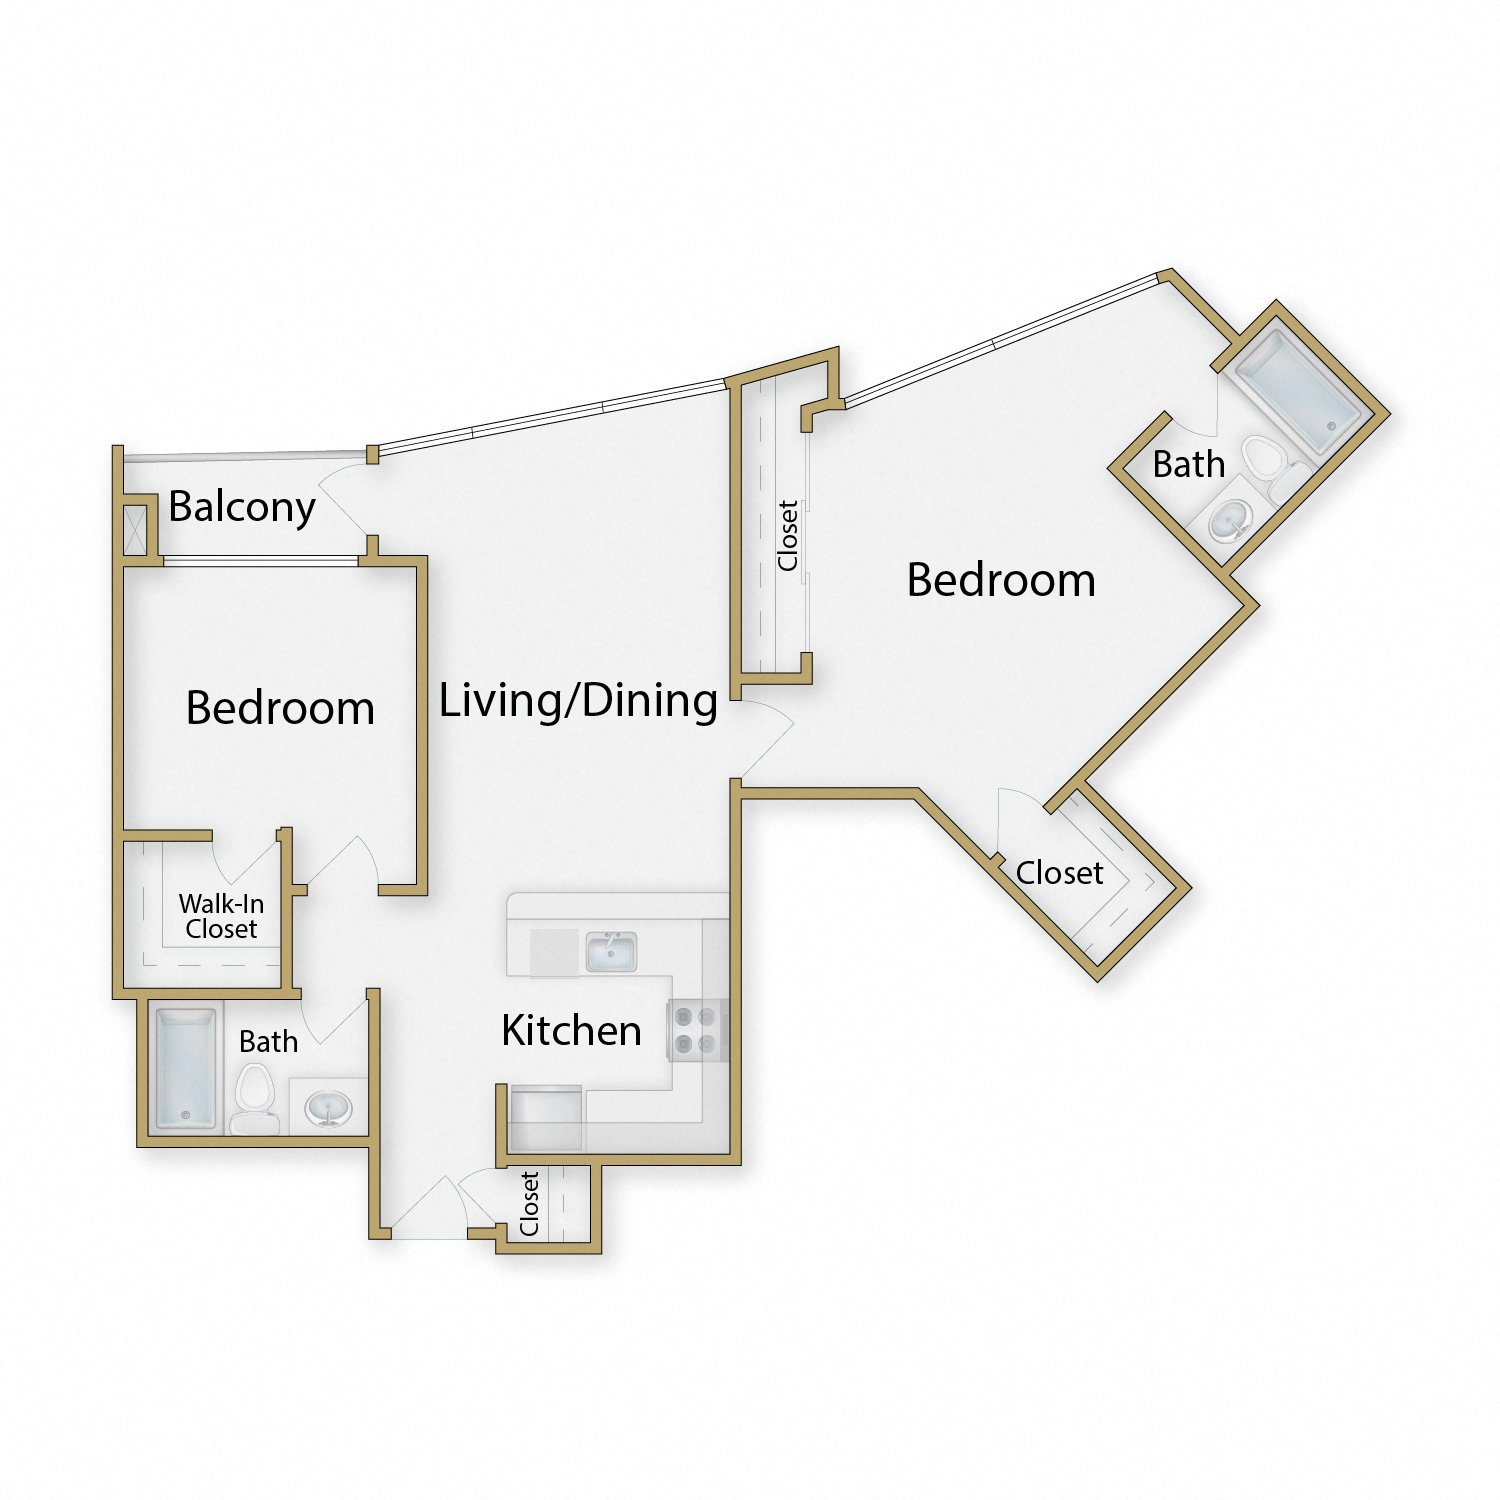 Presidio floor plan diagram. Two bedrooms, two bathrooms, an open kitchen dining and living area, and a balcony.